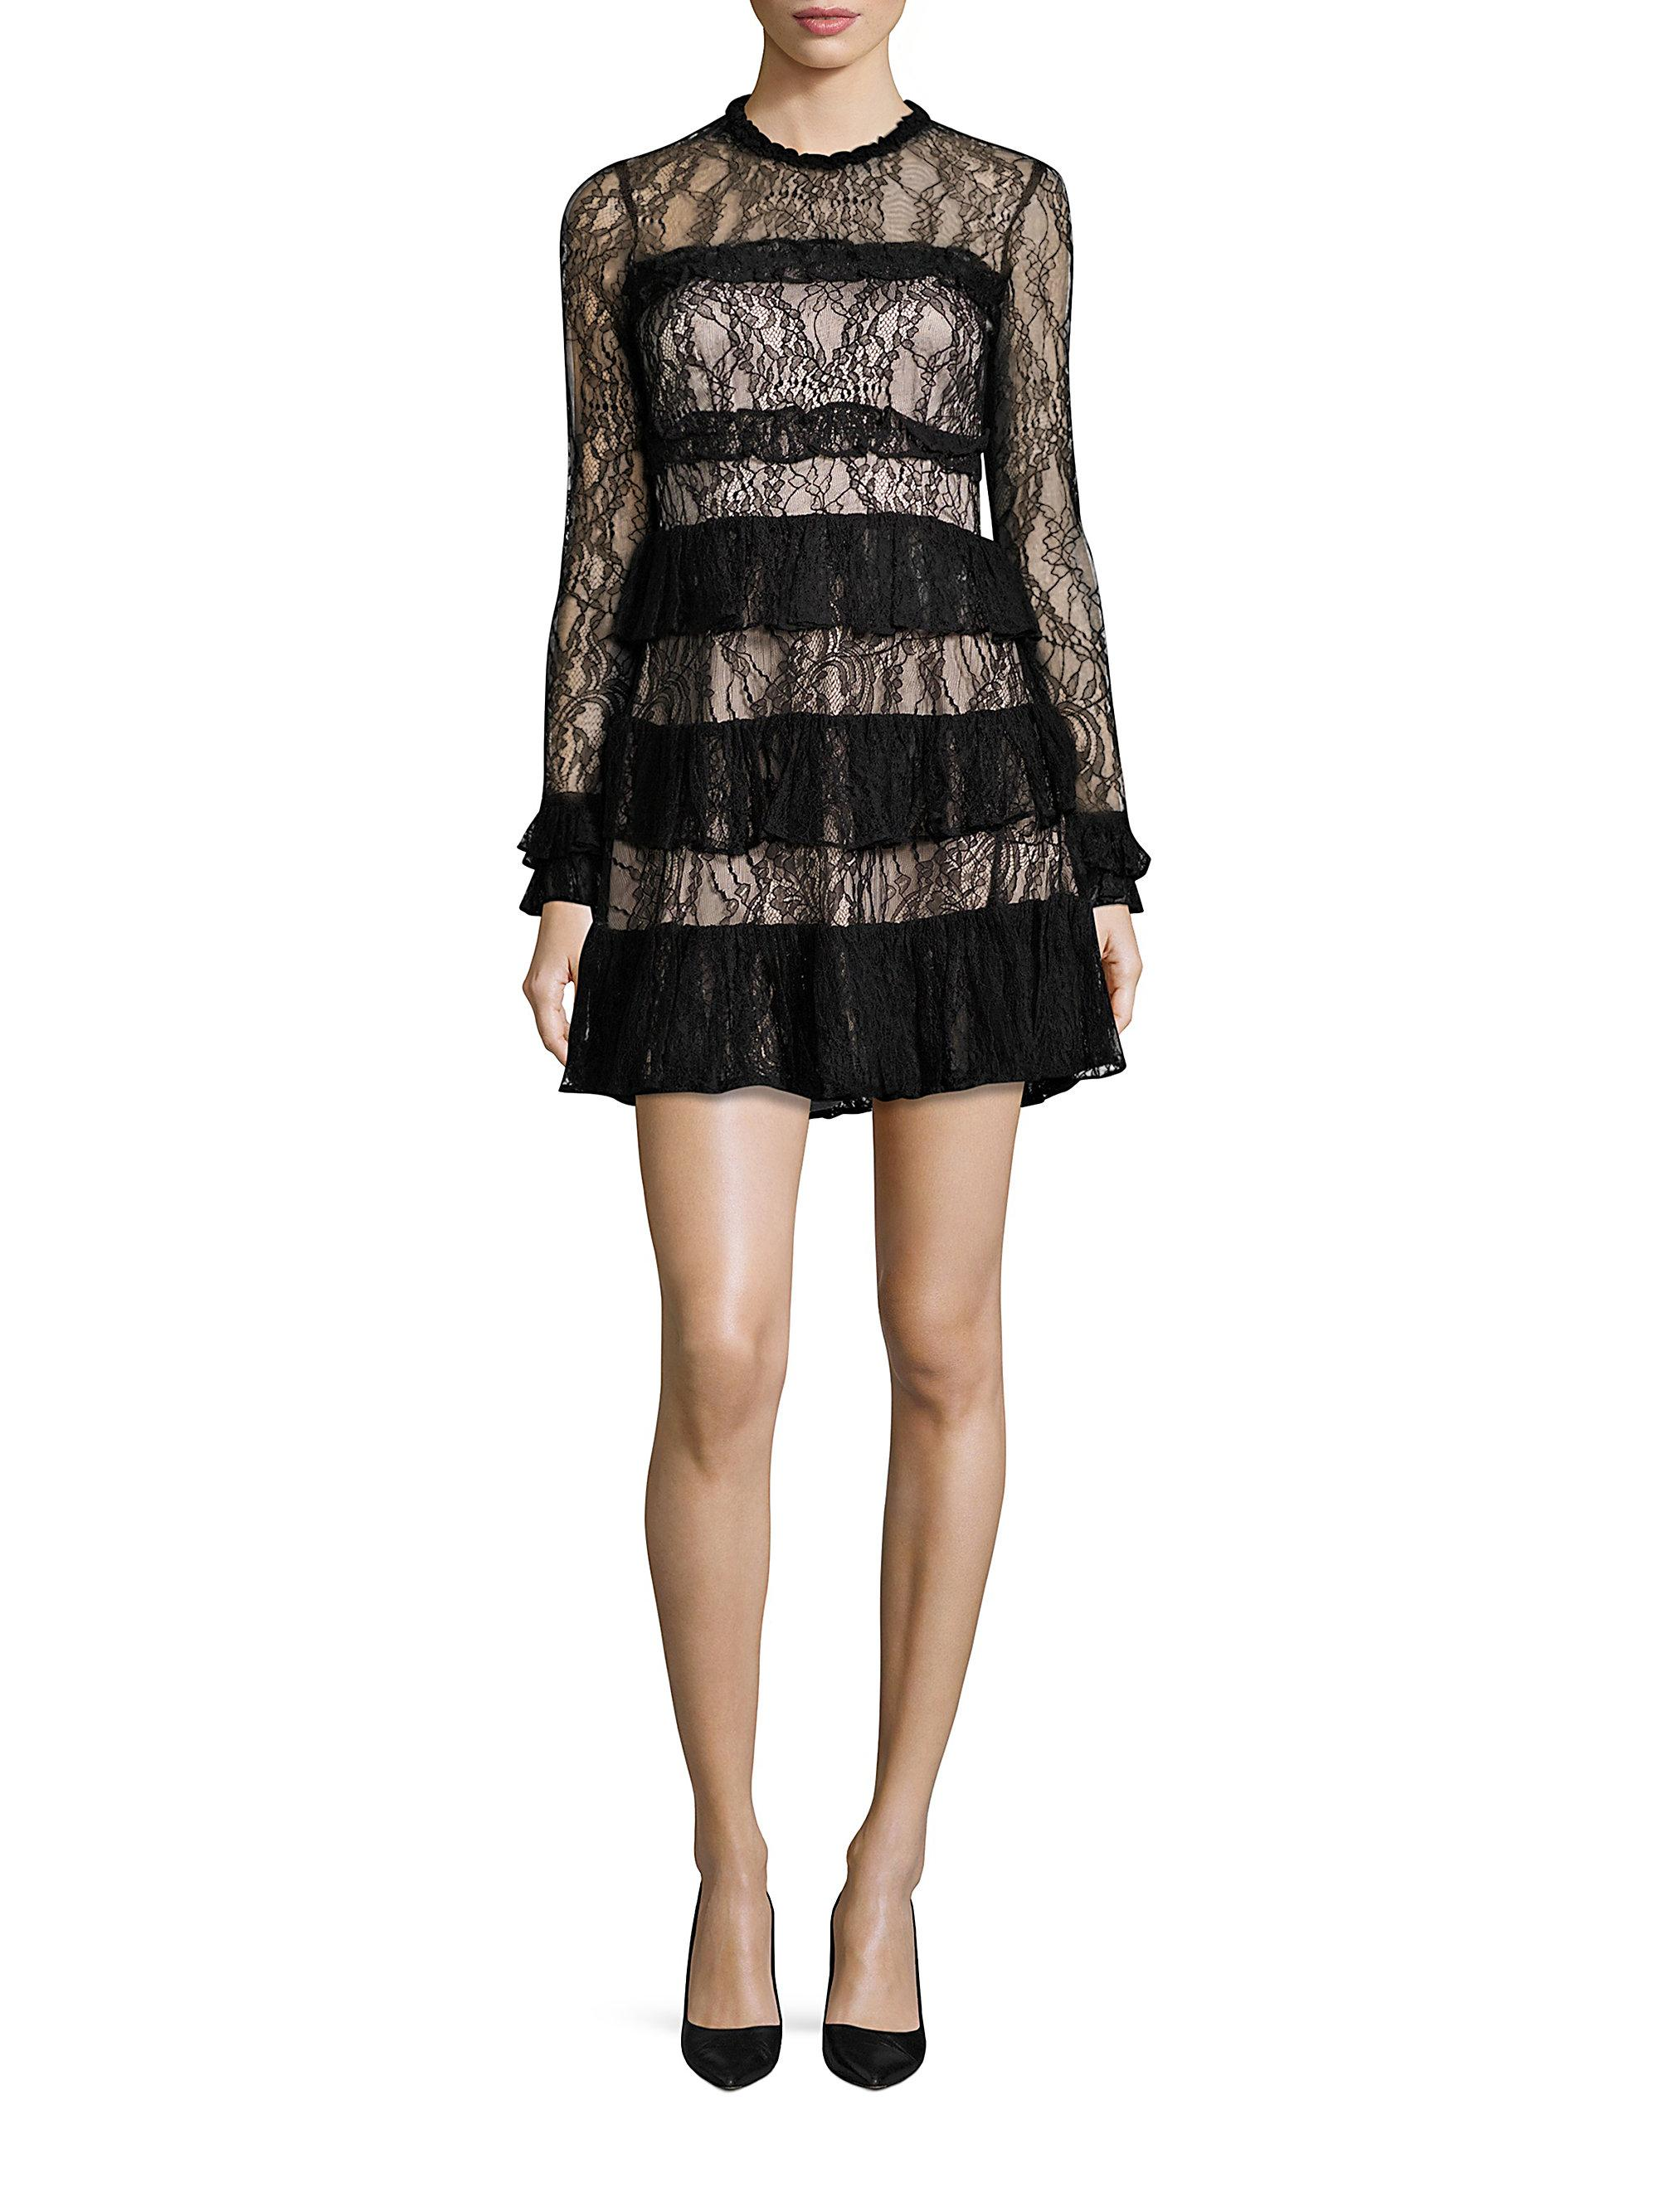 2060c5e6a0f29 Lyst - Alexis Sally Tiered Ruffle Lace Dress in Black